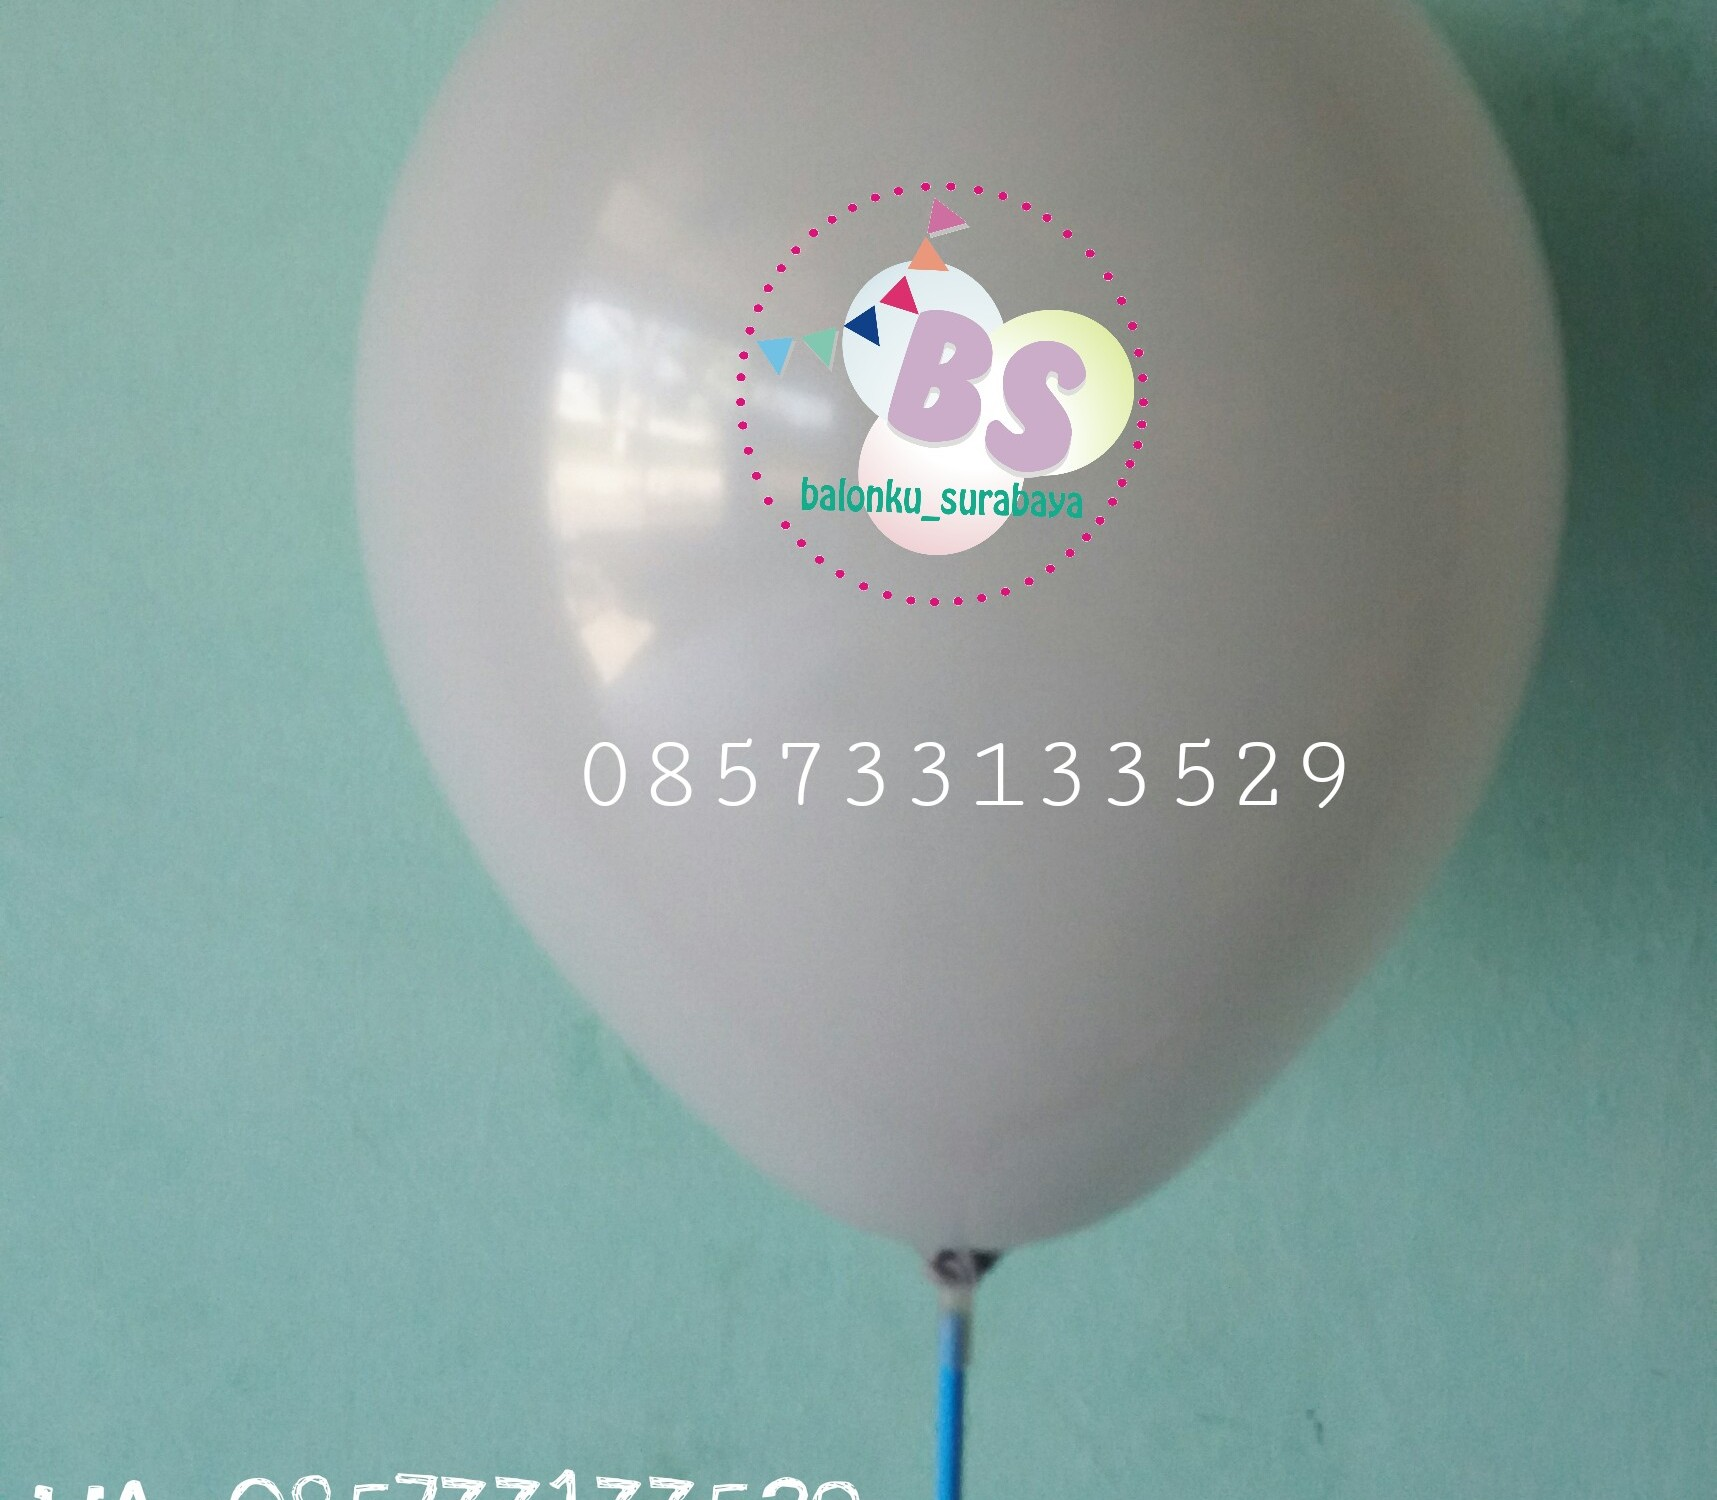 balon warna abu - abu, balon latex, balon adalima, balon doff, balon metalik